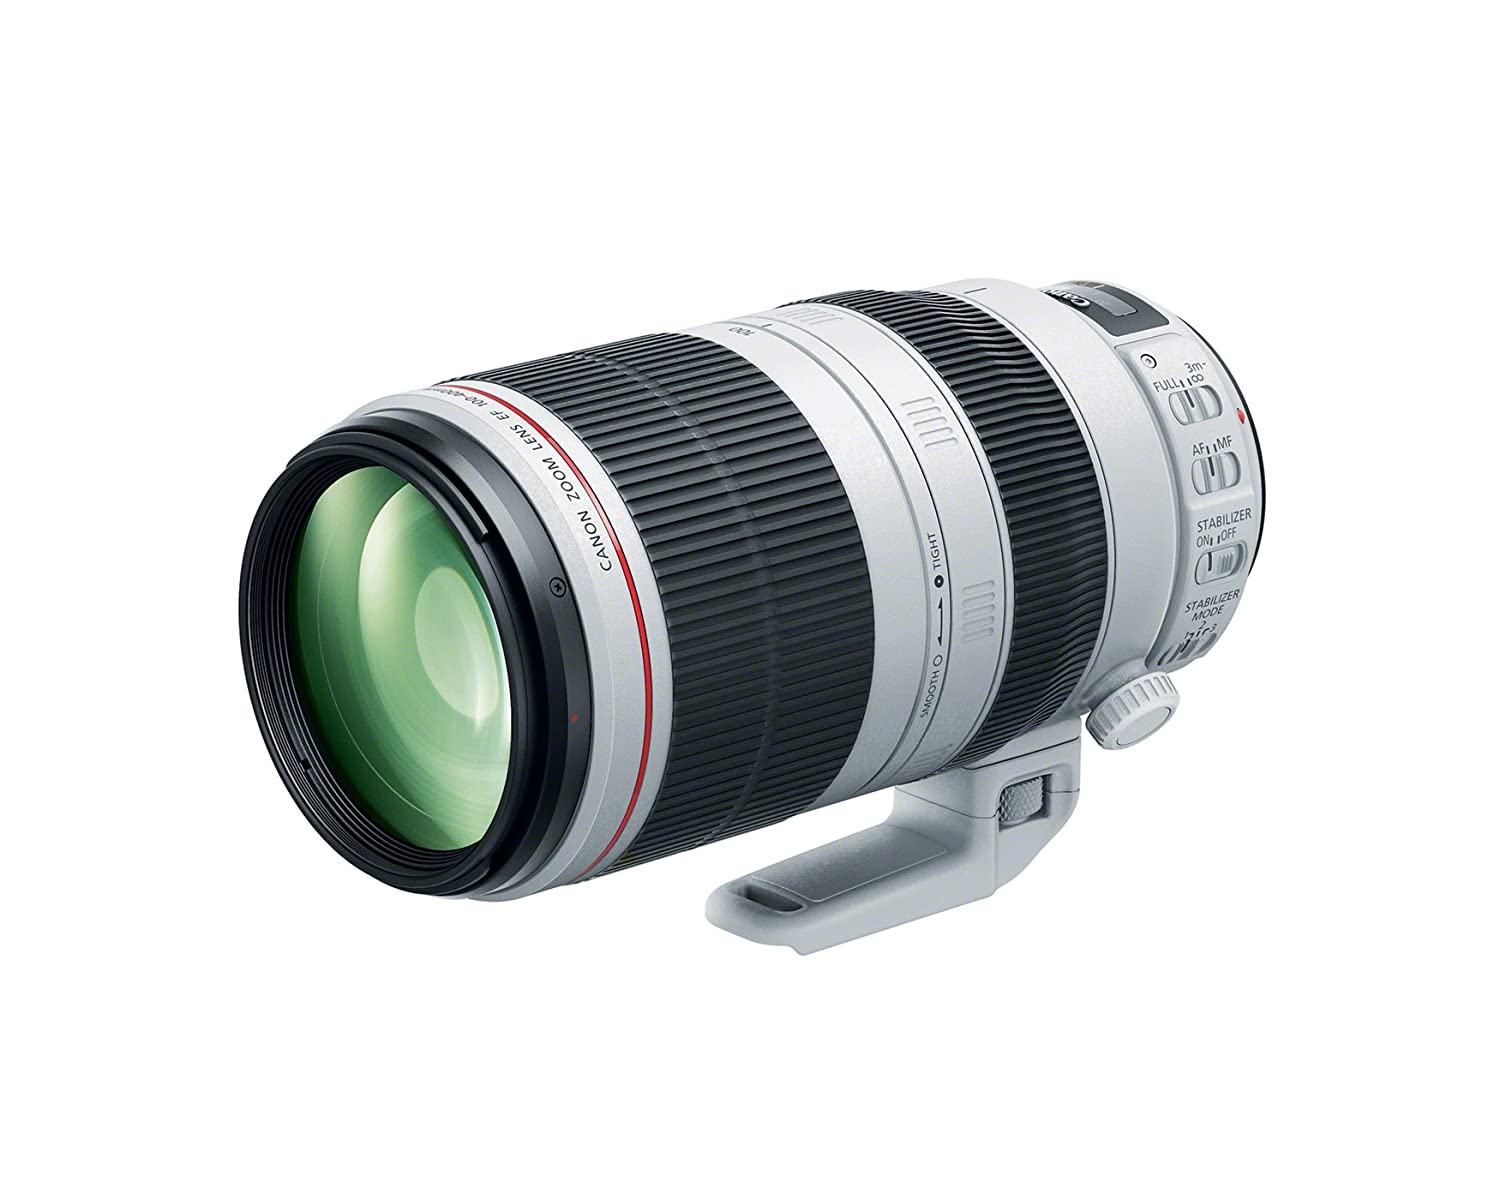 77 mm Canon EF 100-400mm f//4.5-5.6L IS II USM Lens with Circular Polarizer Lens